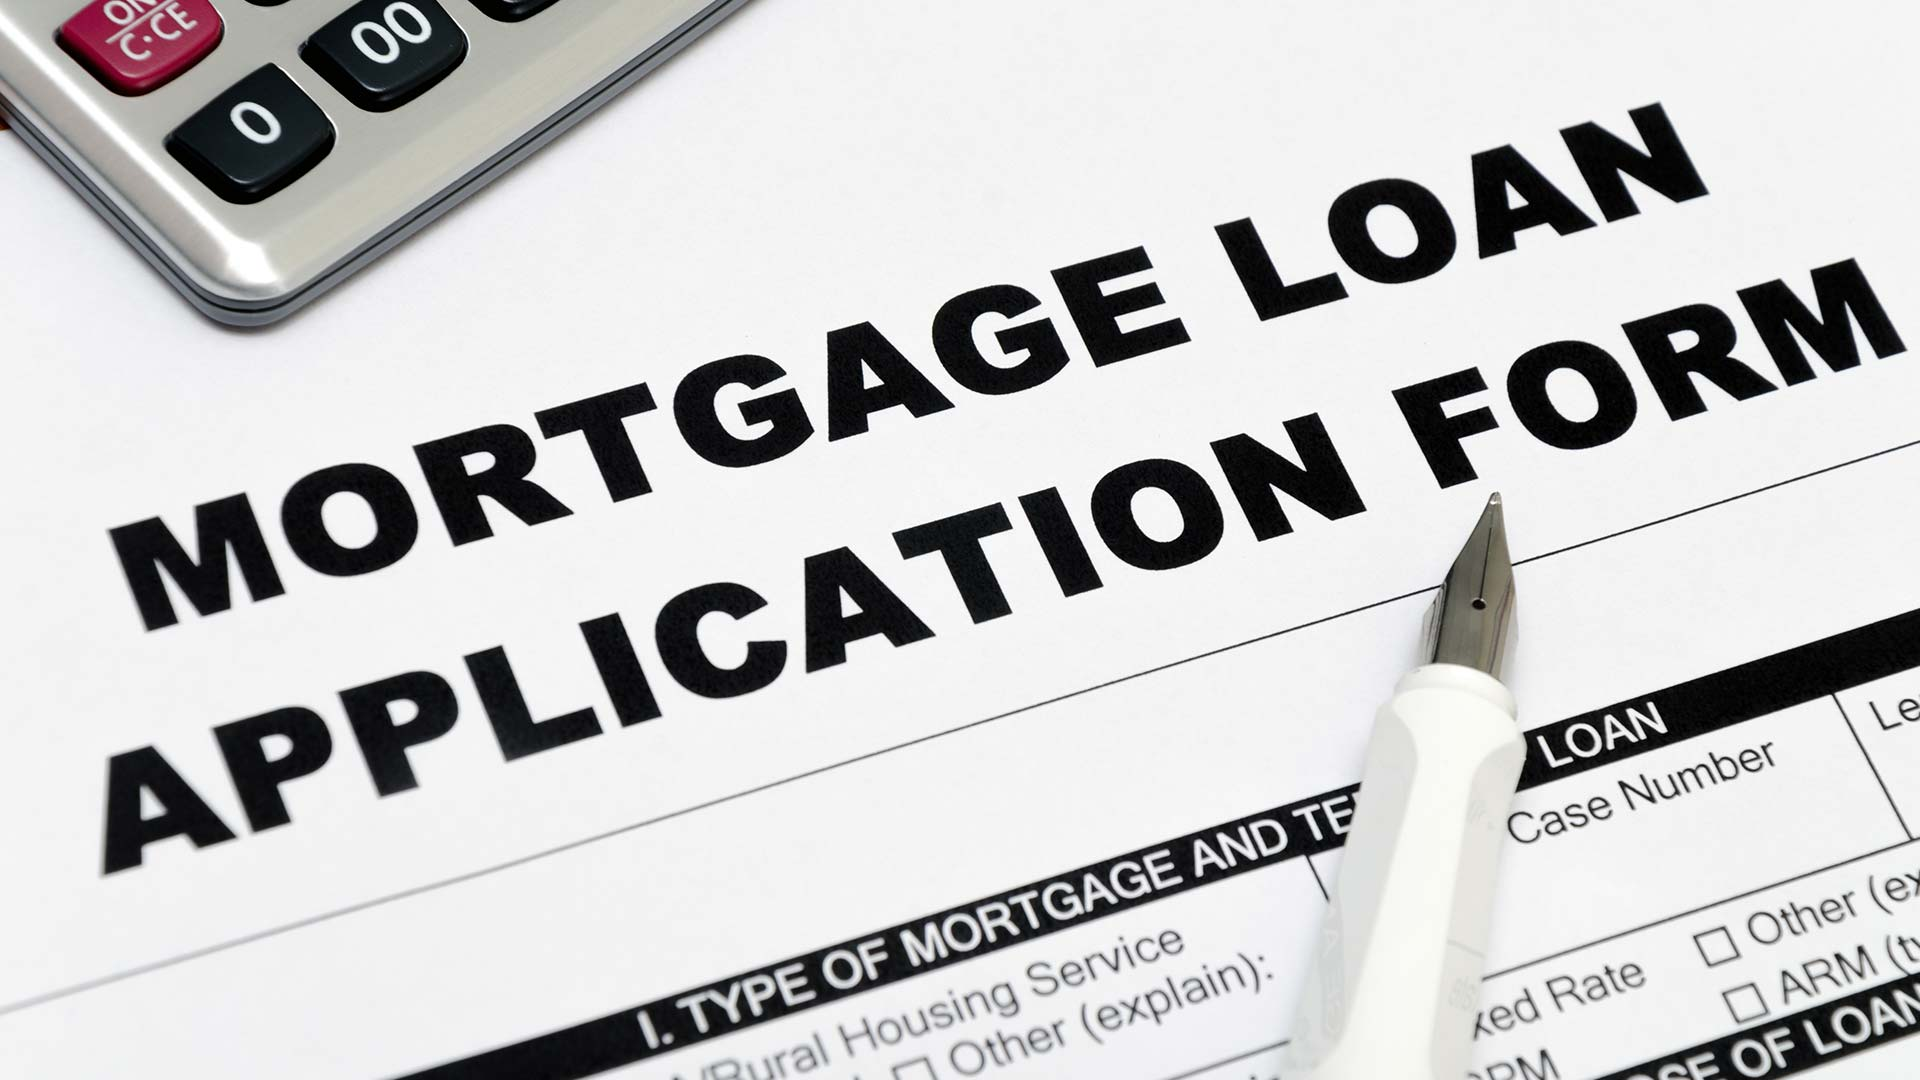 mortgage loan Mortgage and real estate news including mortgage rates, processing, and refinancing.